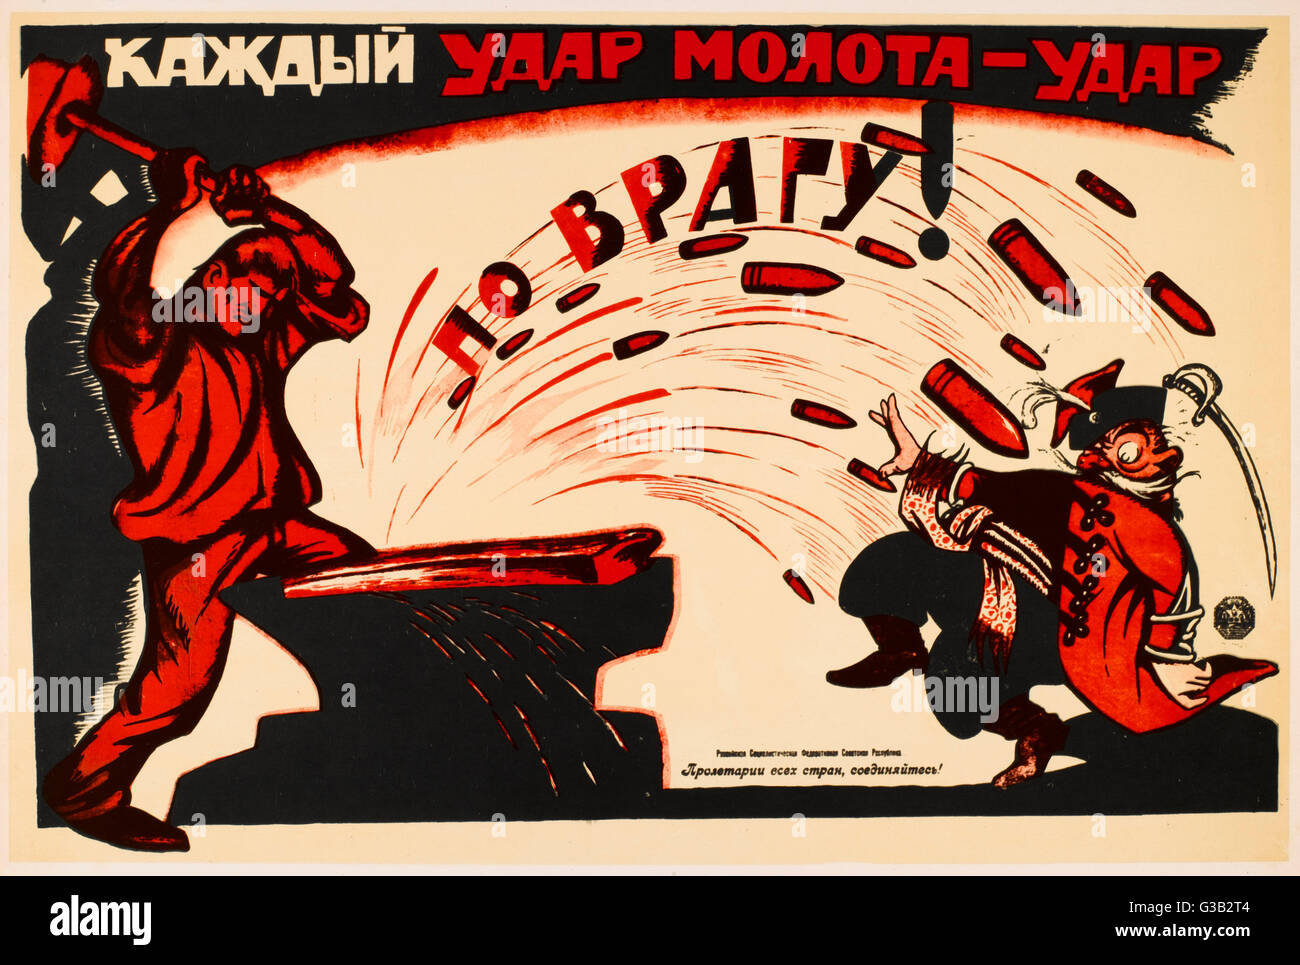 'EVERY BLOW OF THE HAMMER IS A  BLOW AT THE ENEMY'         Date: 1920 Stock Photo